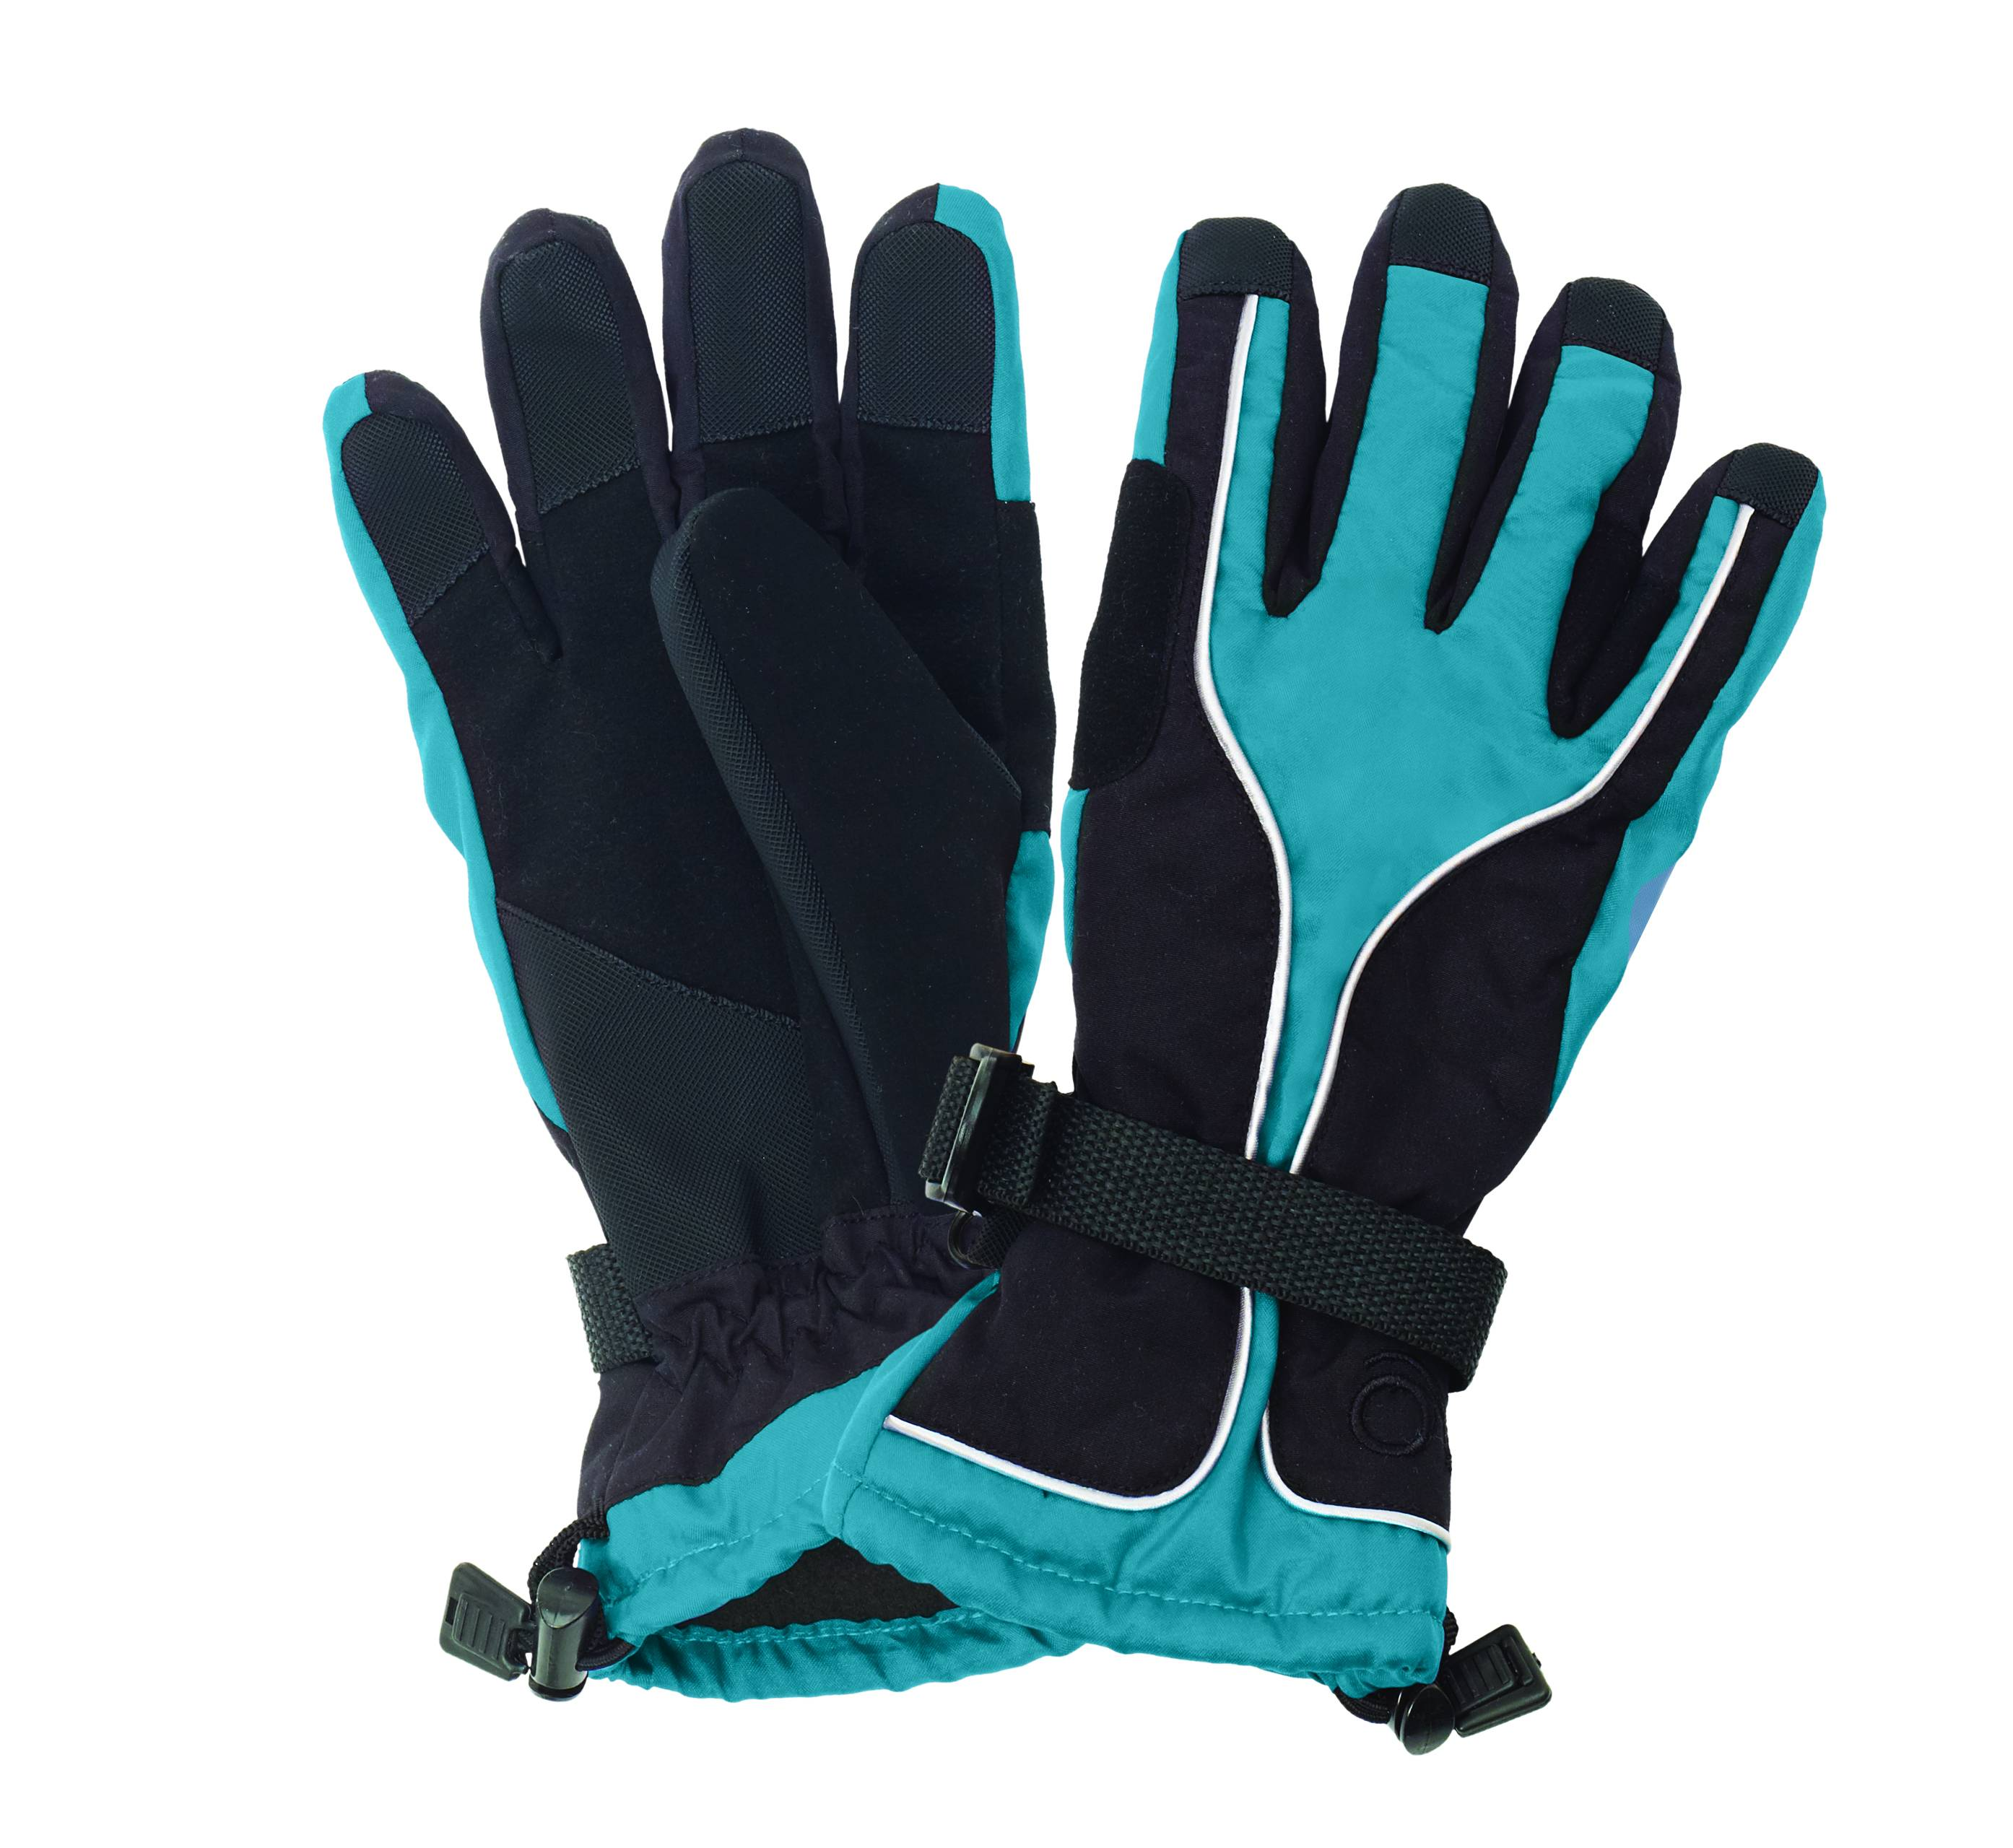 Ovation Extreamer Snow Gloves- Unisex